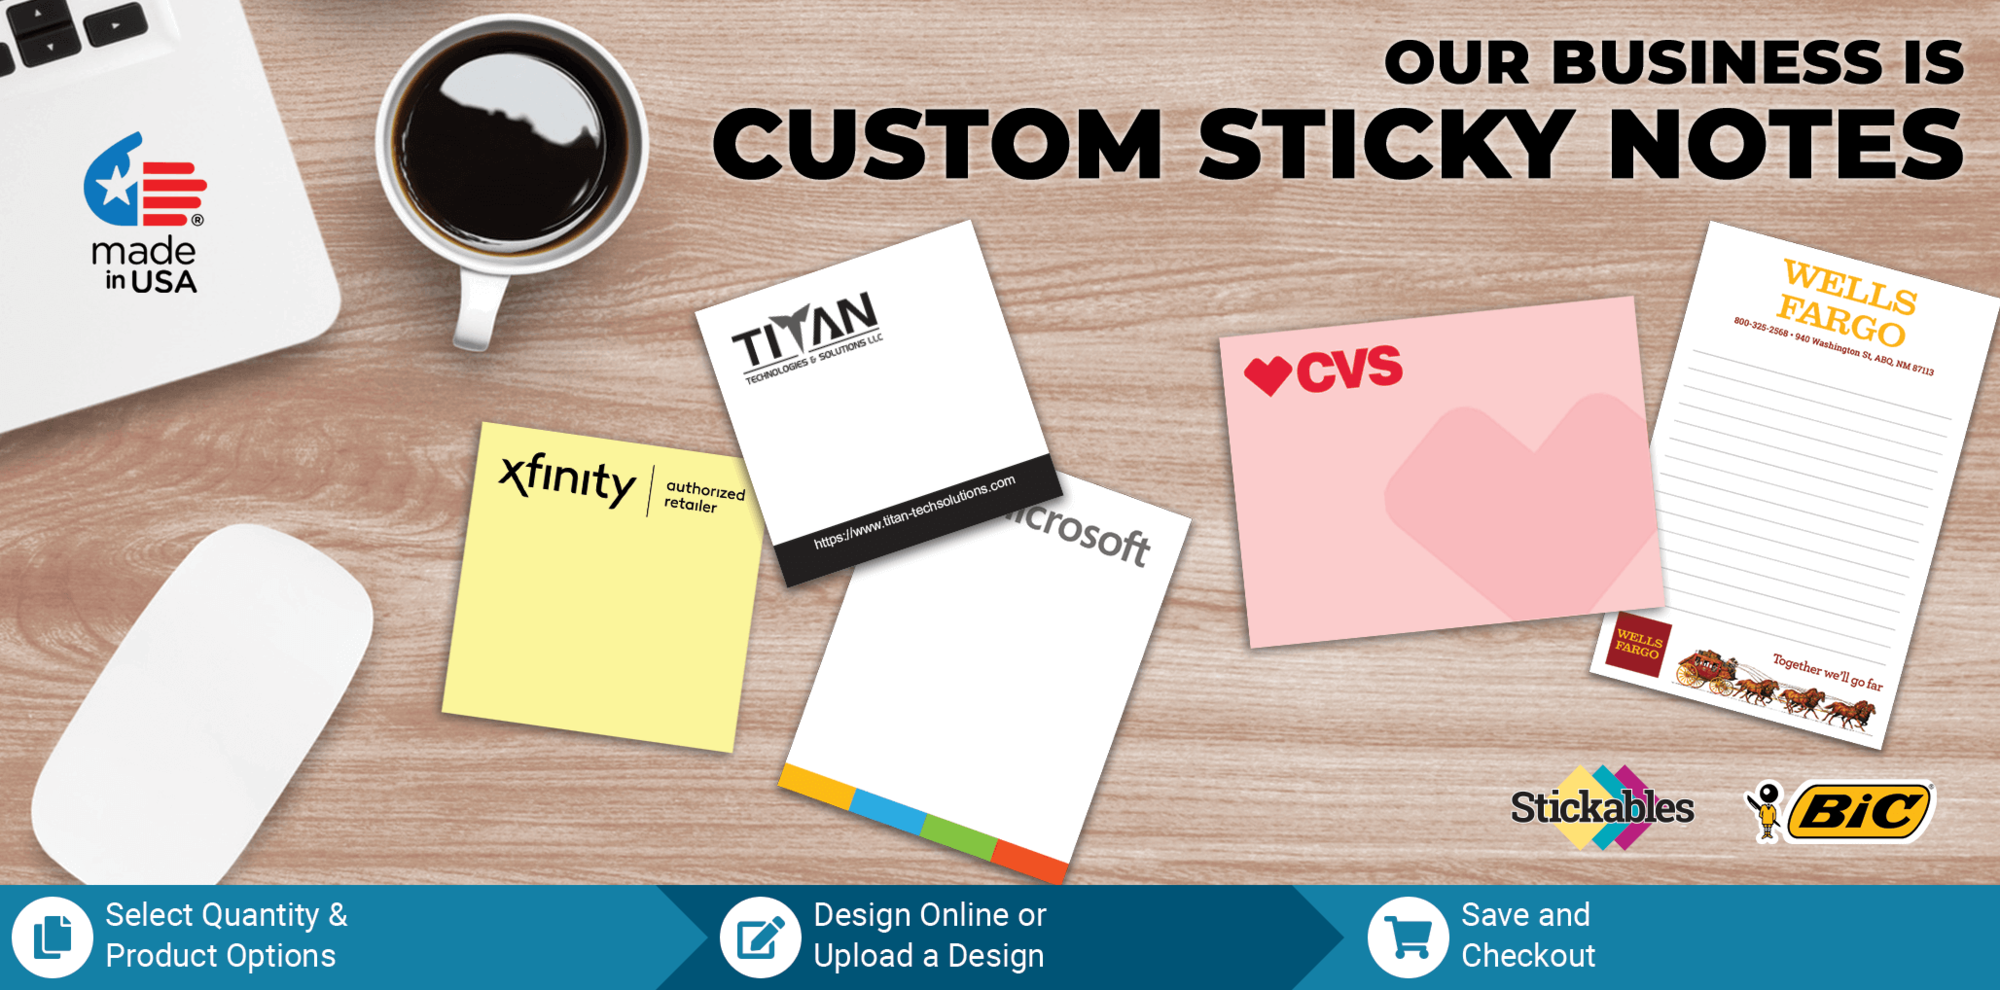 https://printpps.com/images/products_gallery_images/Custom-Sticky-Notes_Product-Page-Banner56.png